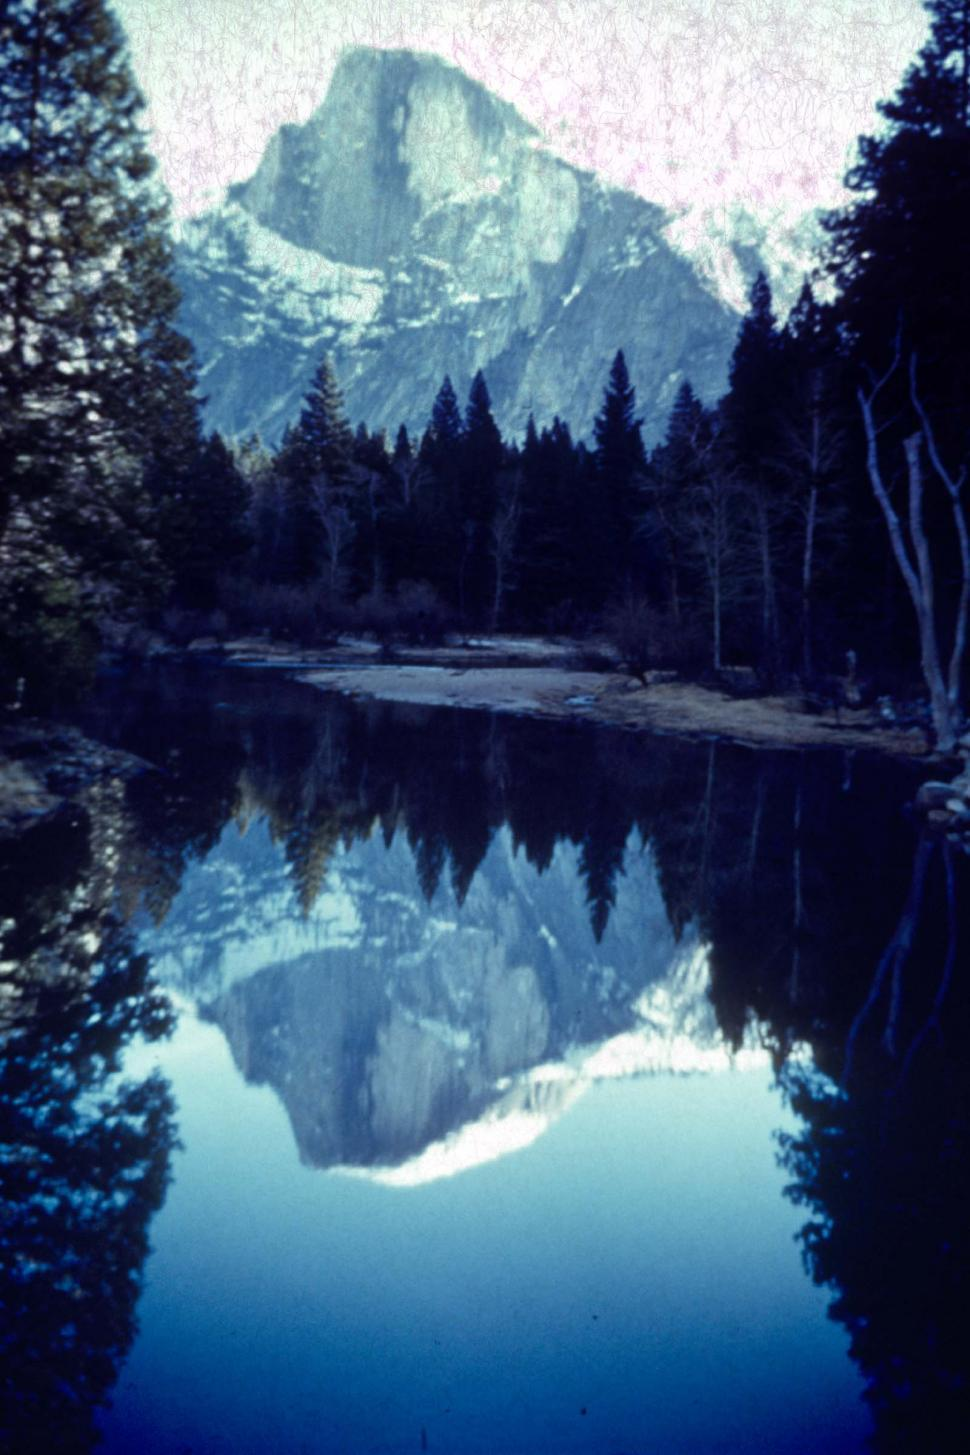 Download Free Stock Photo of yosemite half dome vintage photograph FACAT001 moutains lakes reflections cold snow snowy peak rockies rocky forest water still trees national park landscapes vintage photo